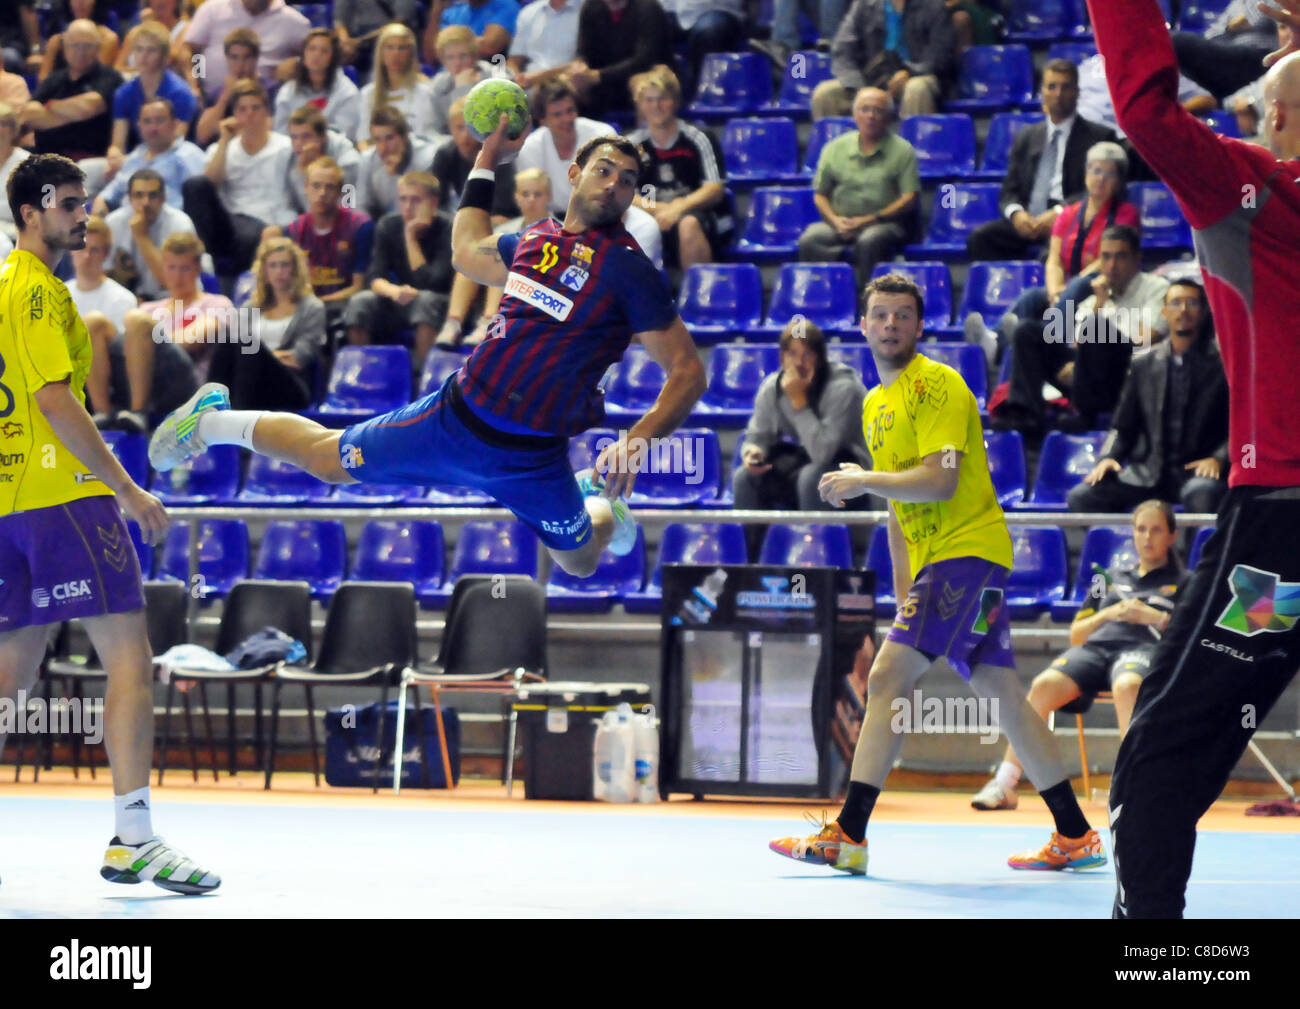 Dani Sarmiento (FC Barcelona Intersport) scores versus Cuatro Rayas Valladolid in a match from the Liga ASOBAL of - Stock Image